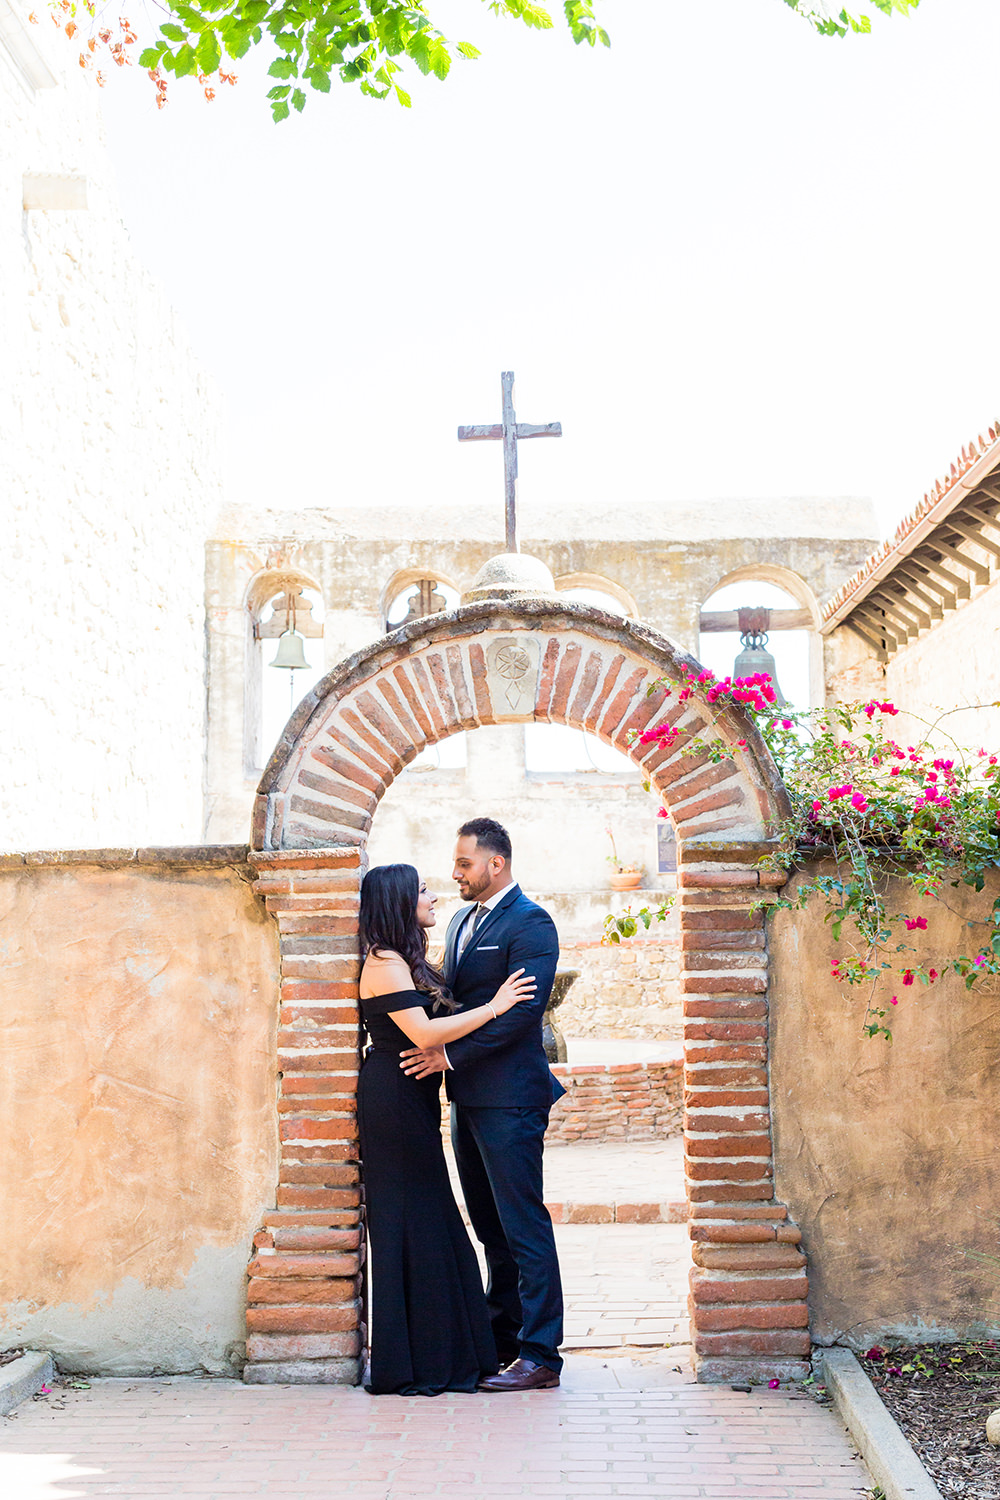 bycphotography mission san jian capistrano engagement session sacred garden